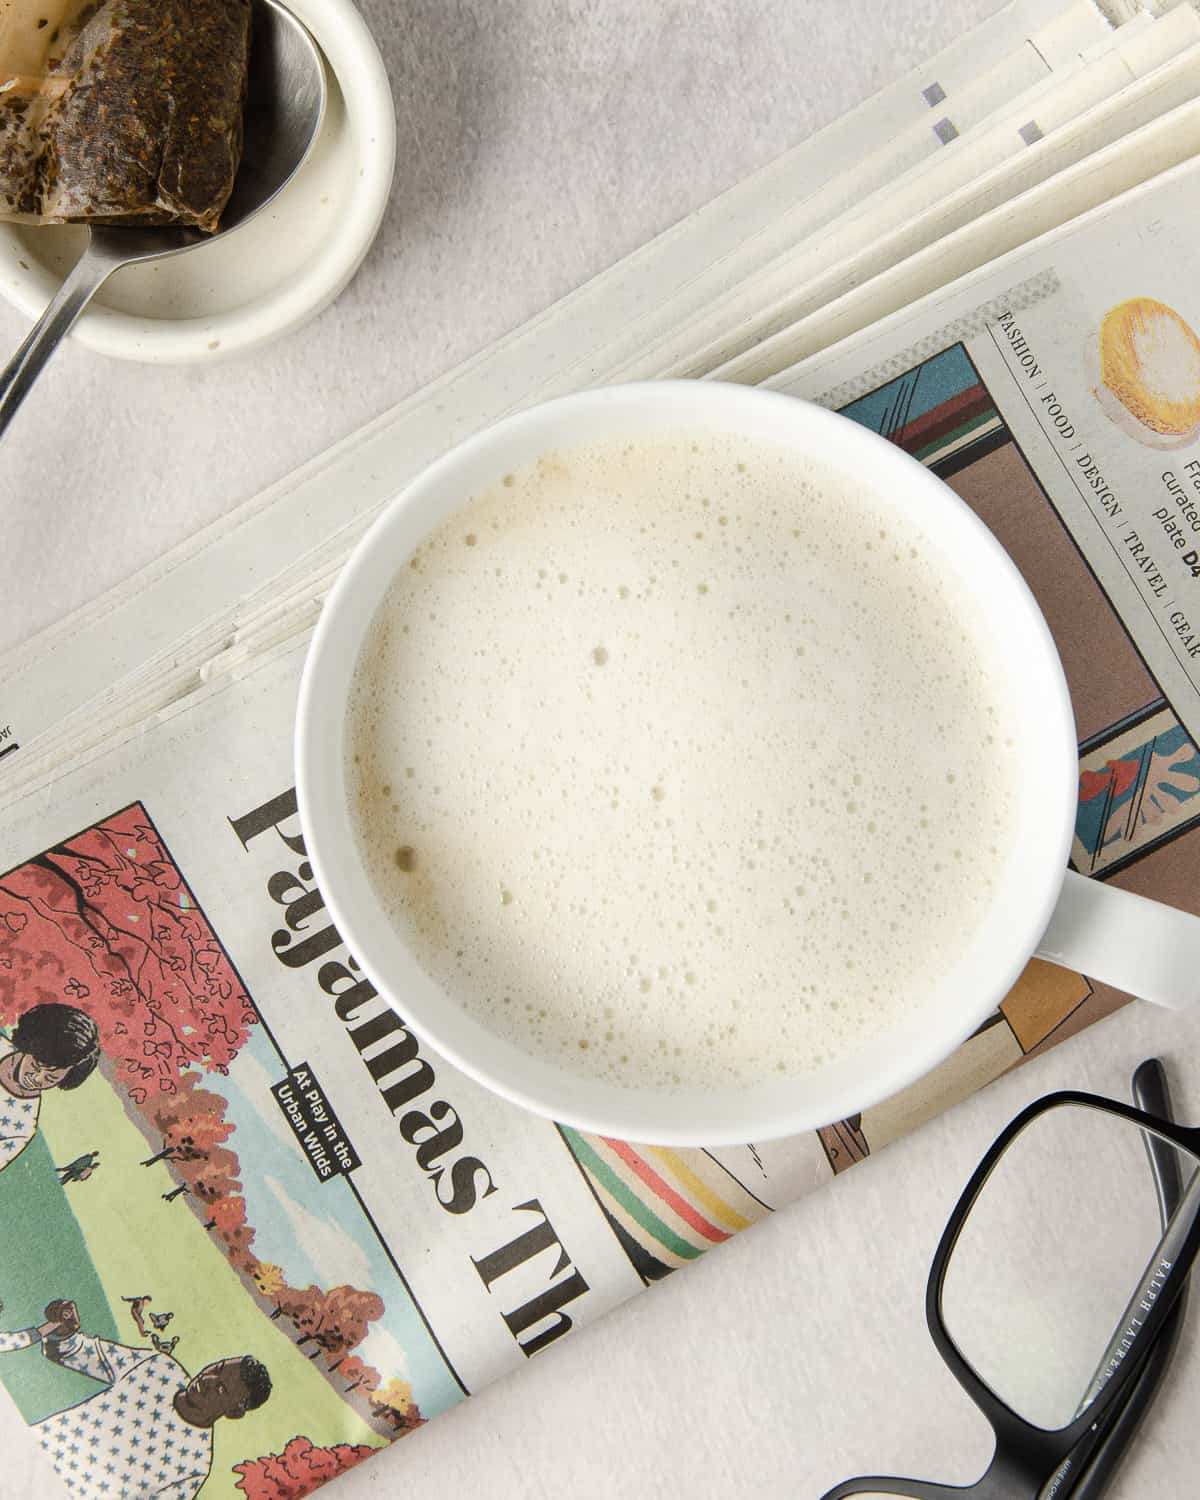 Overhead view of a london fog tea latte on top of a newspaper.